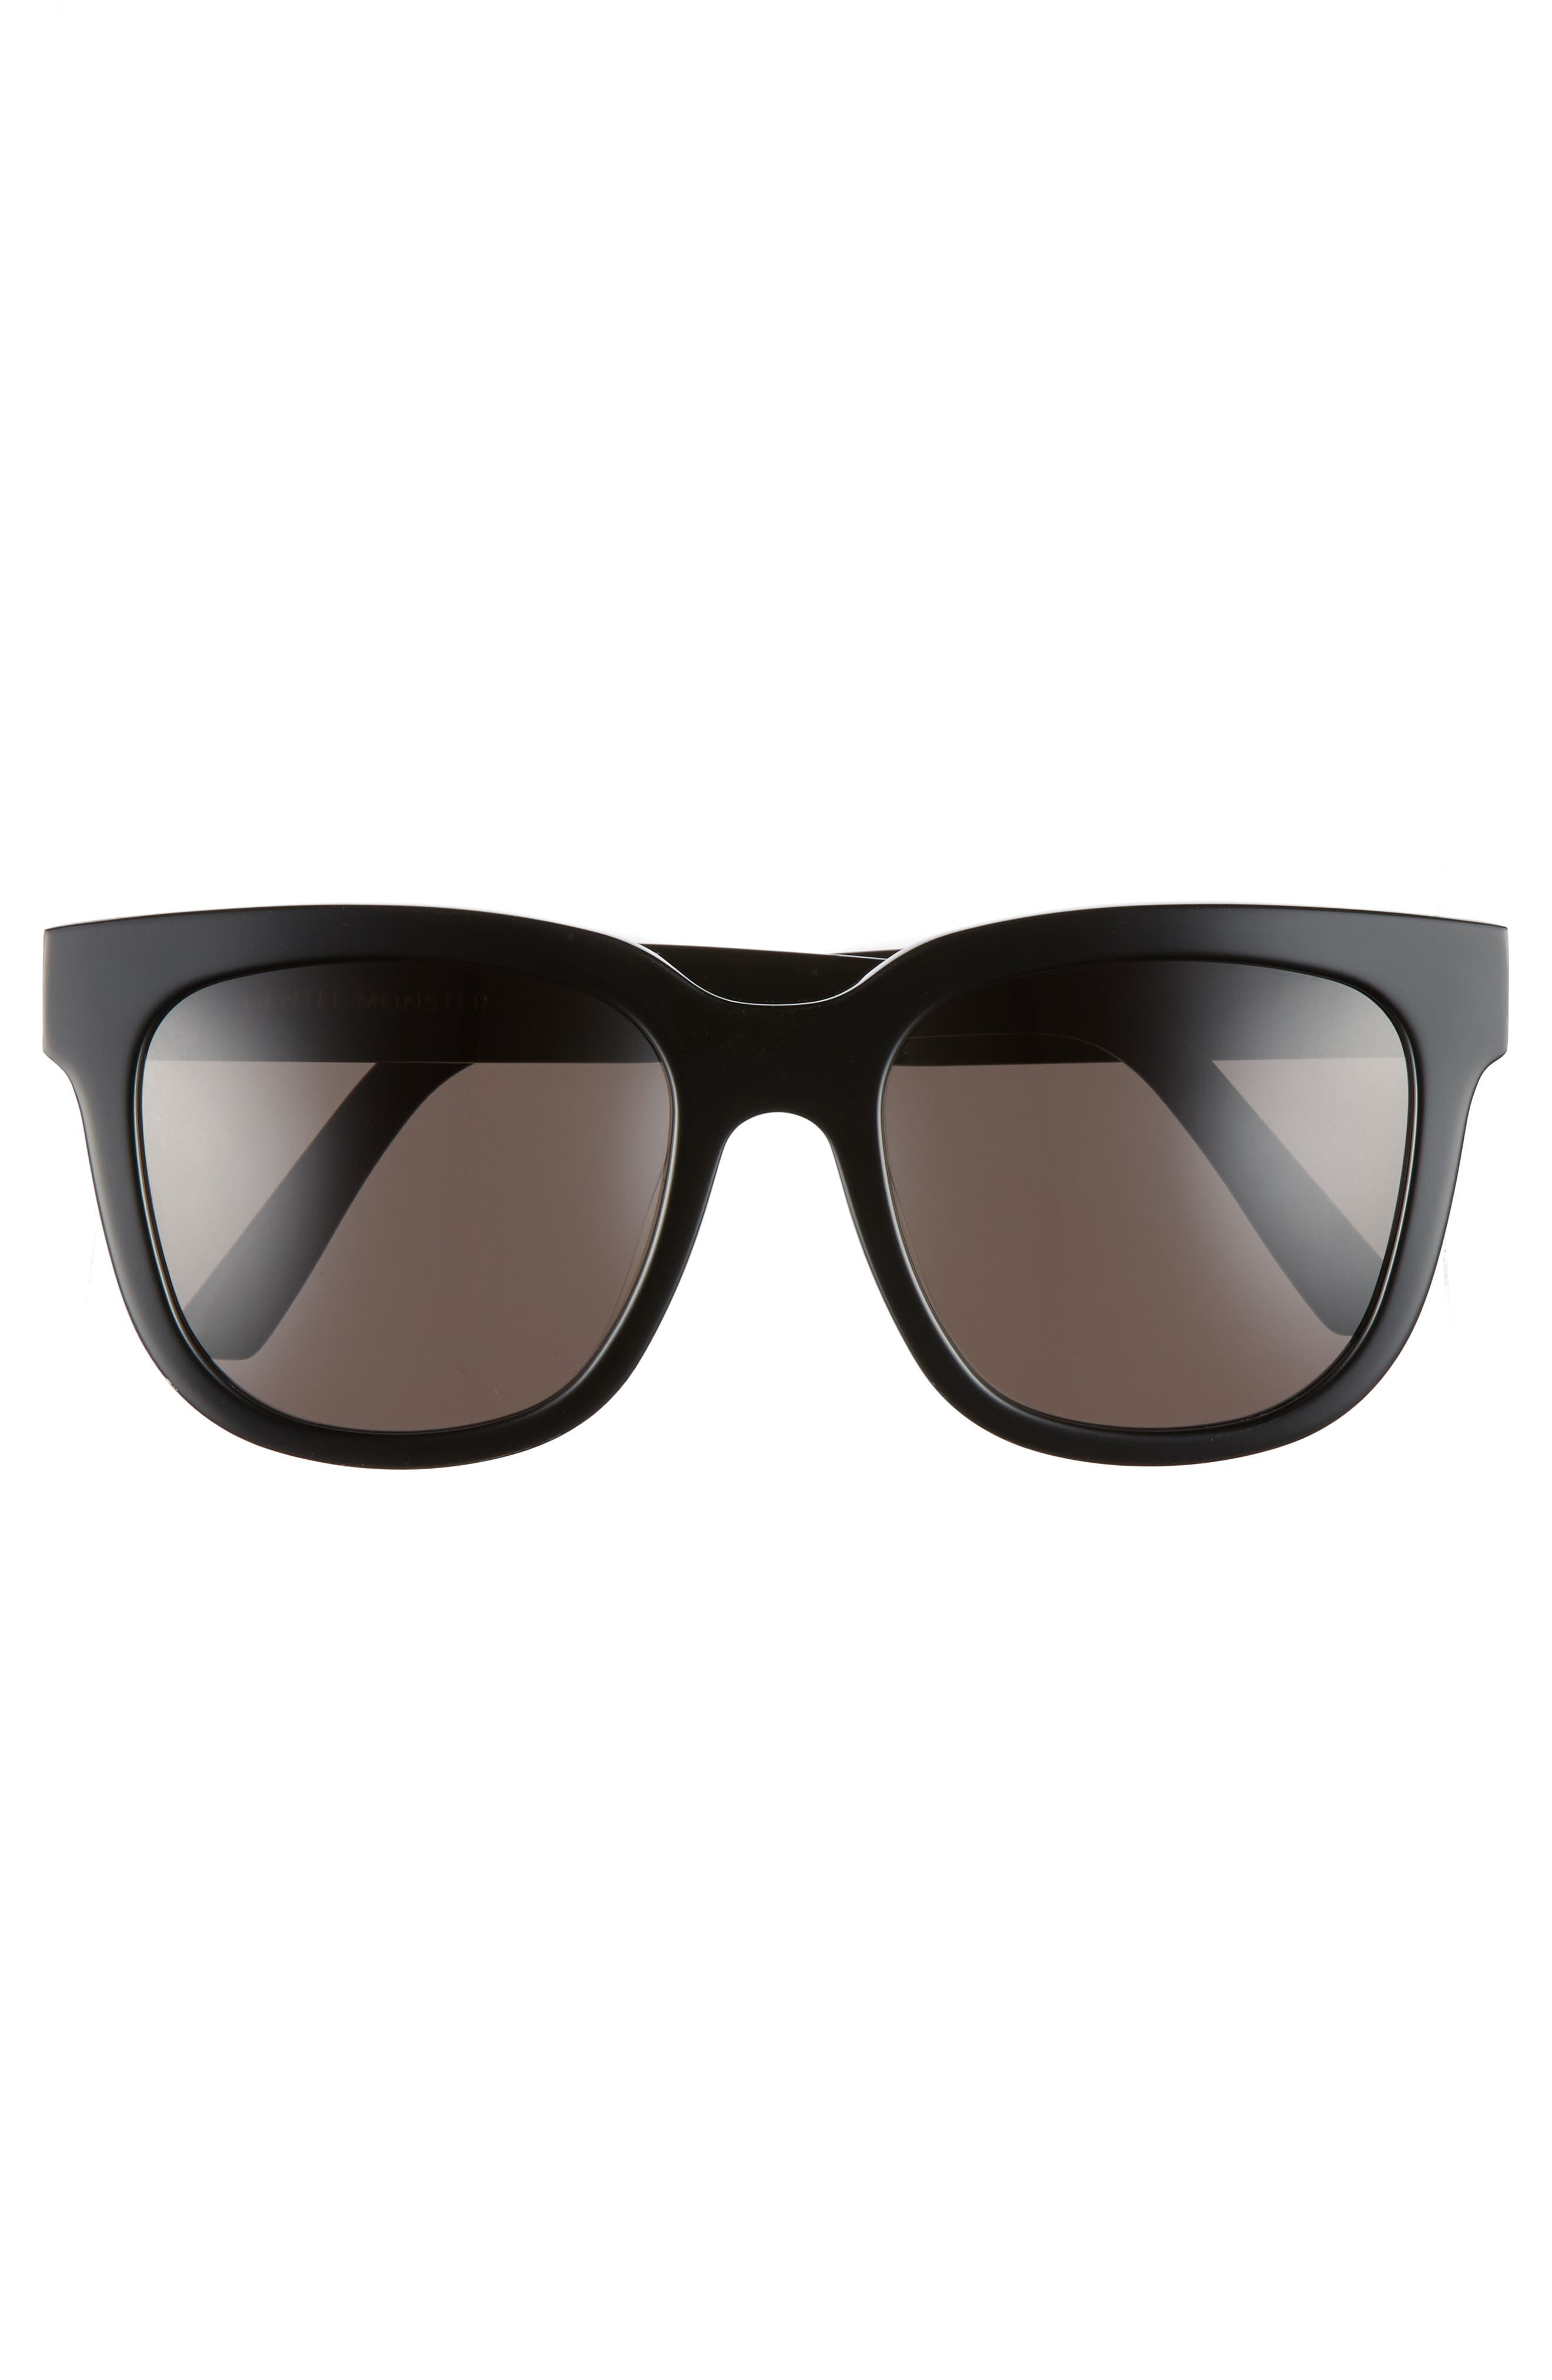 Salt 55mm Sunglasses,                             Alternate thumbnail 3, color,                             001